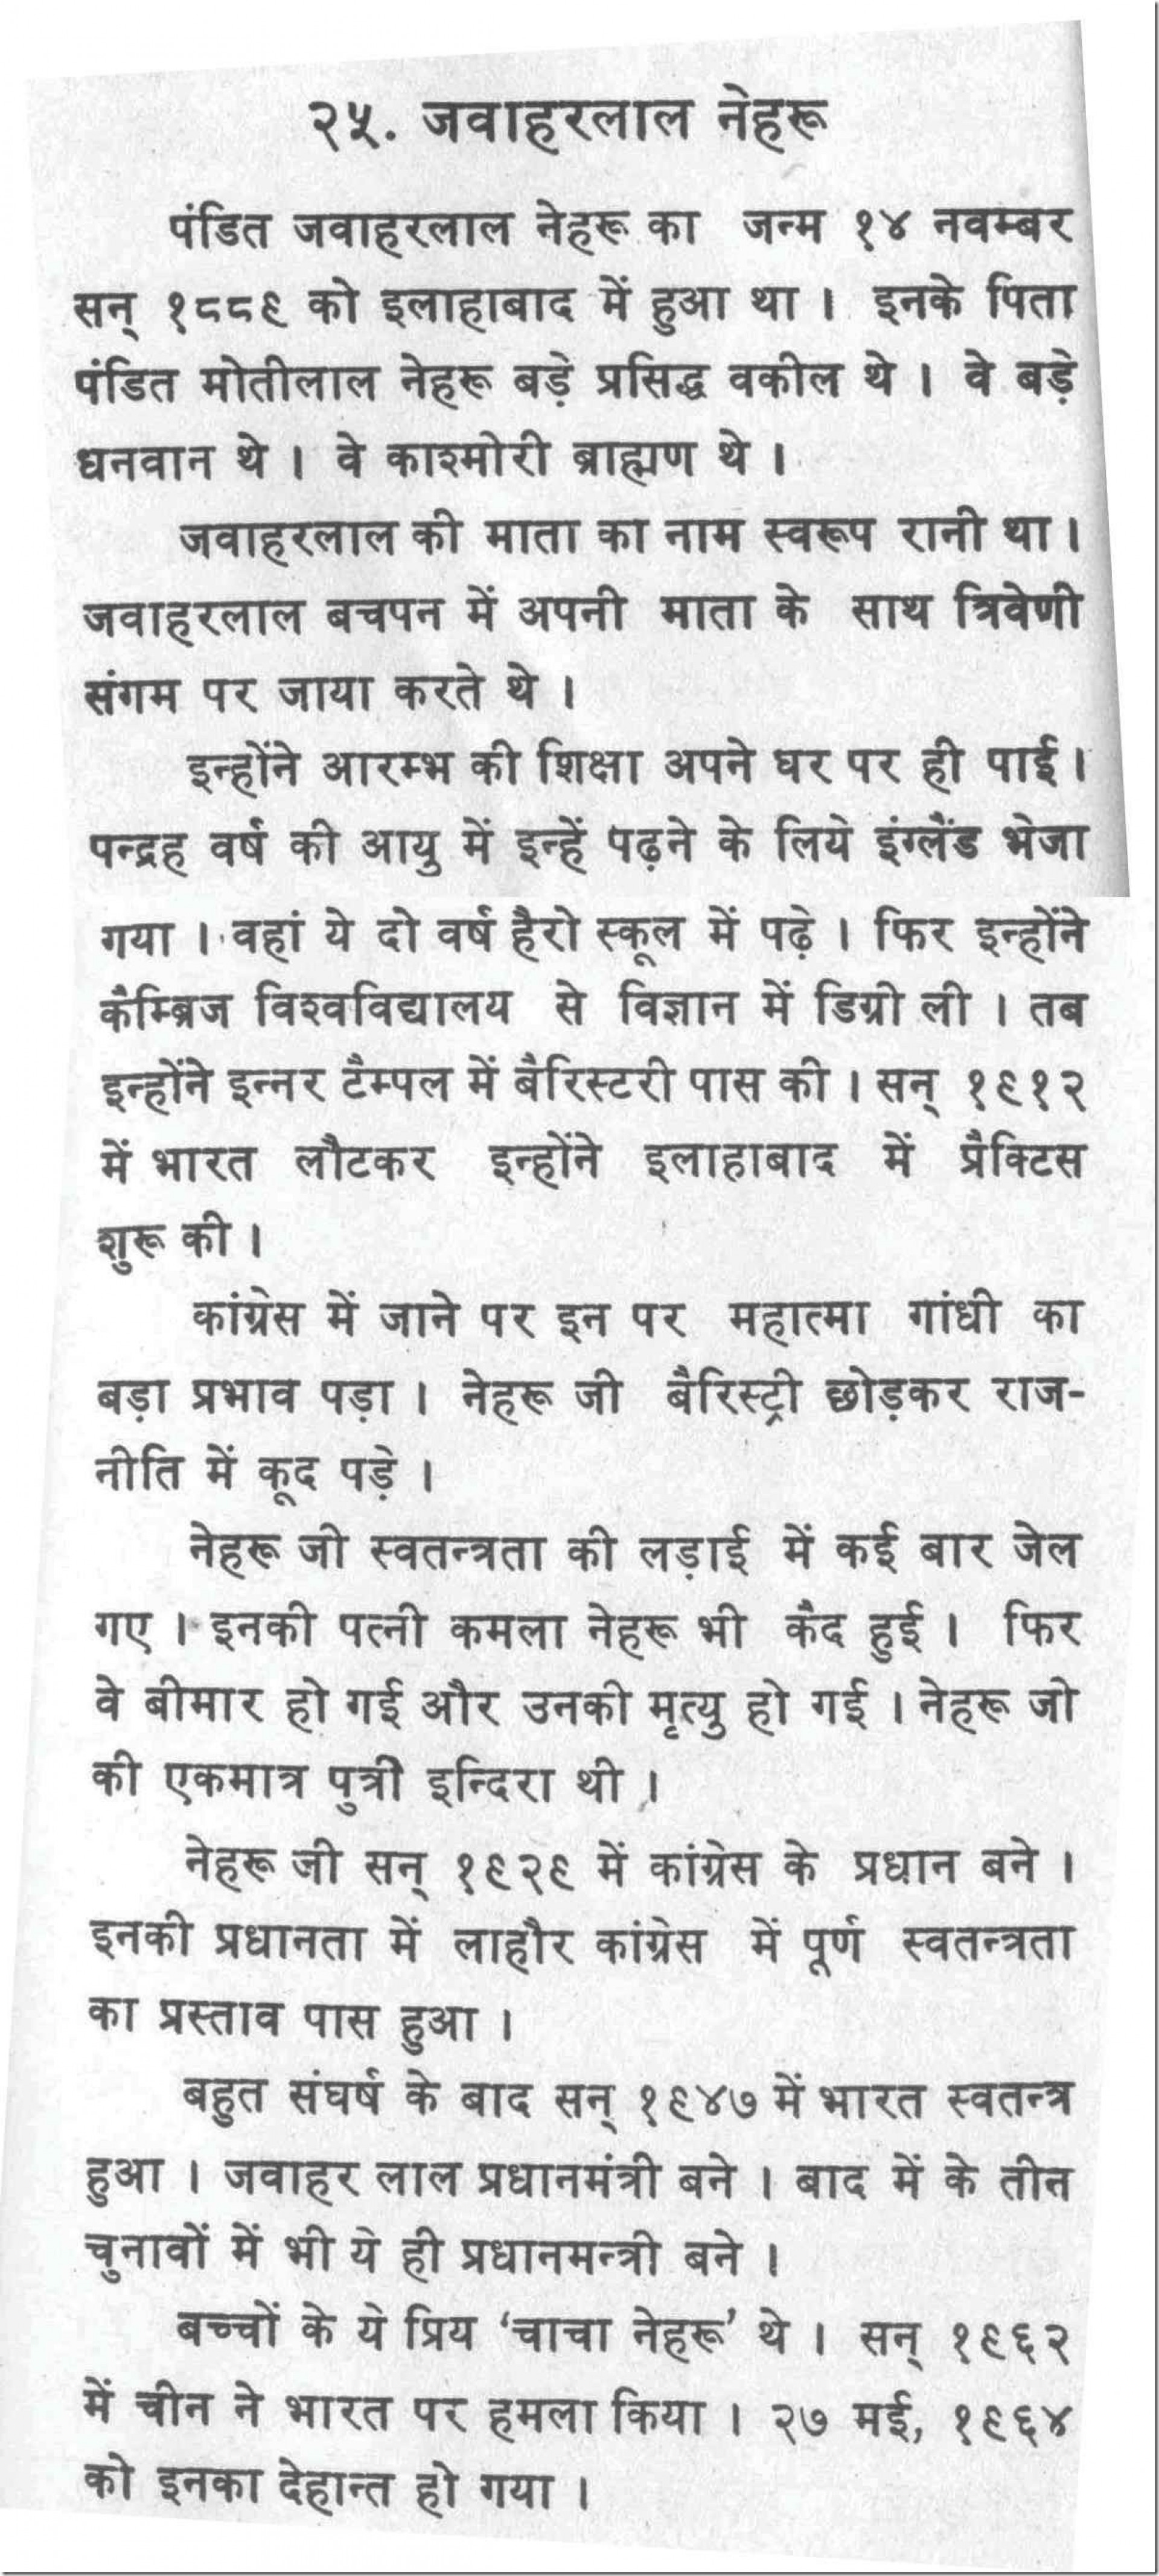 008 10026 Thumb Essay Example On Love For Animals In Fascinating Hindi Towards And Birds 1920